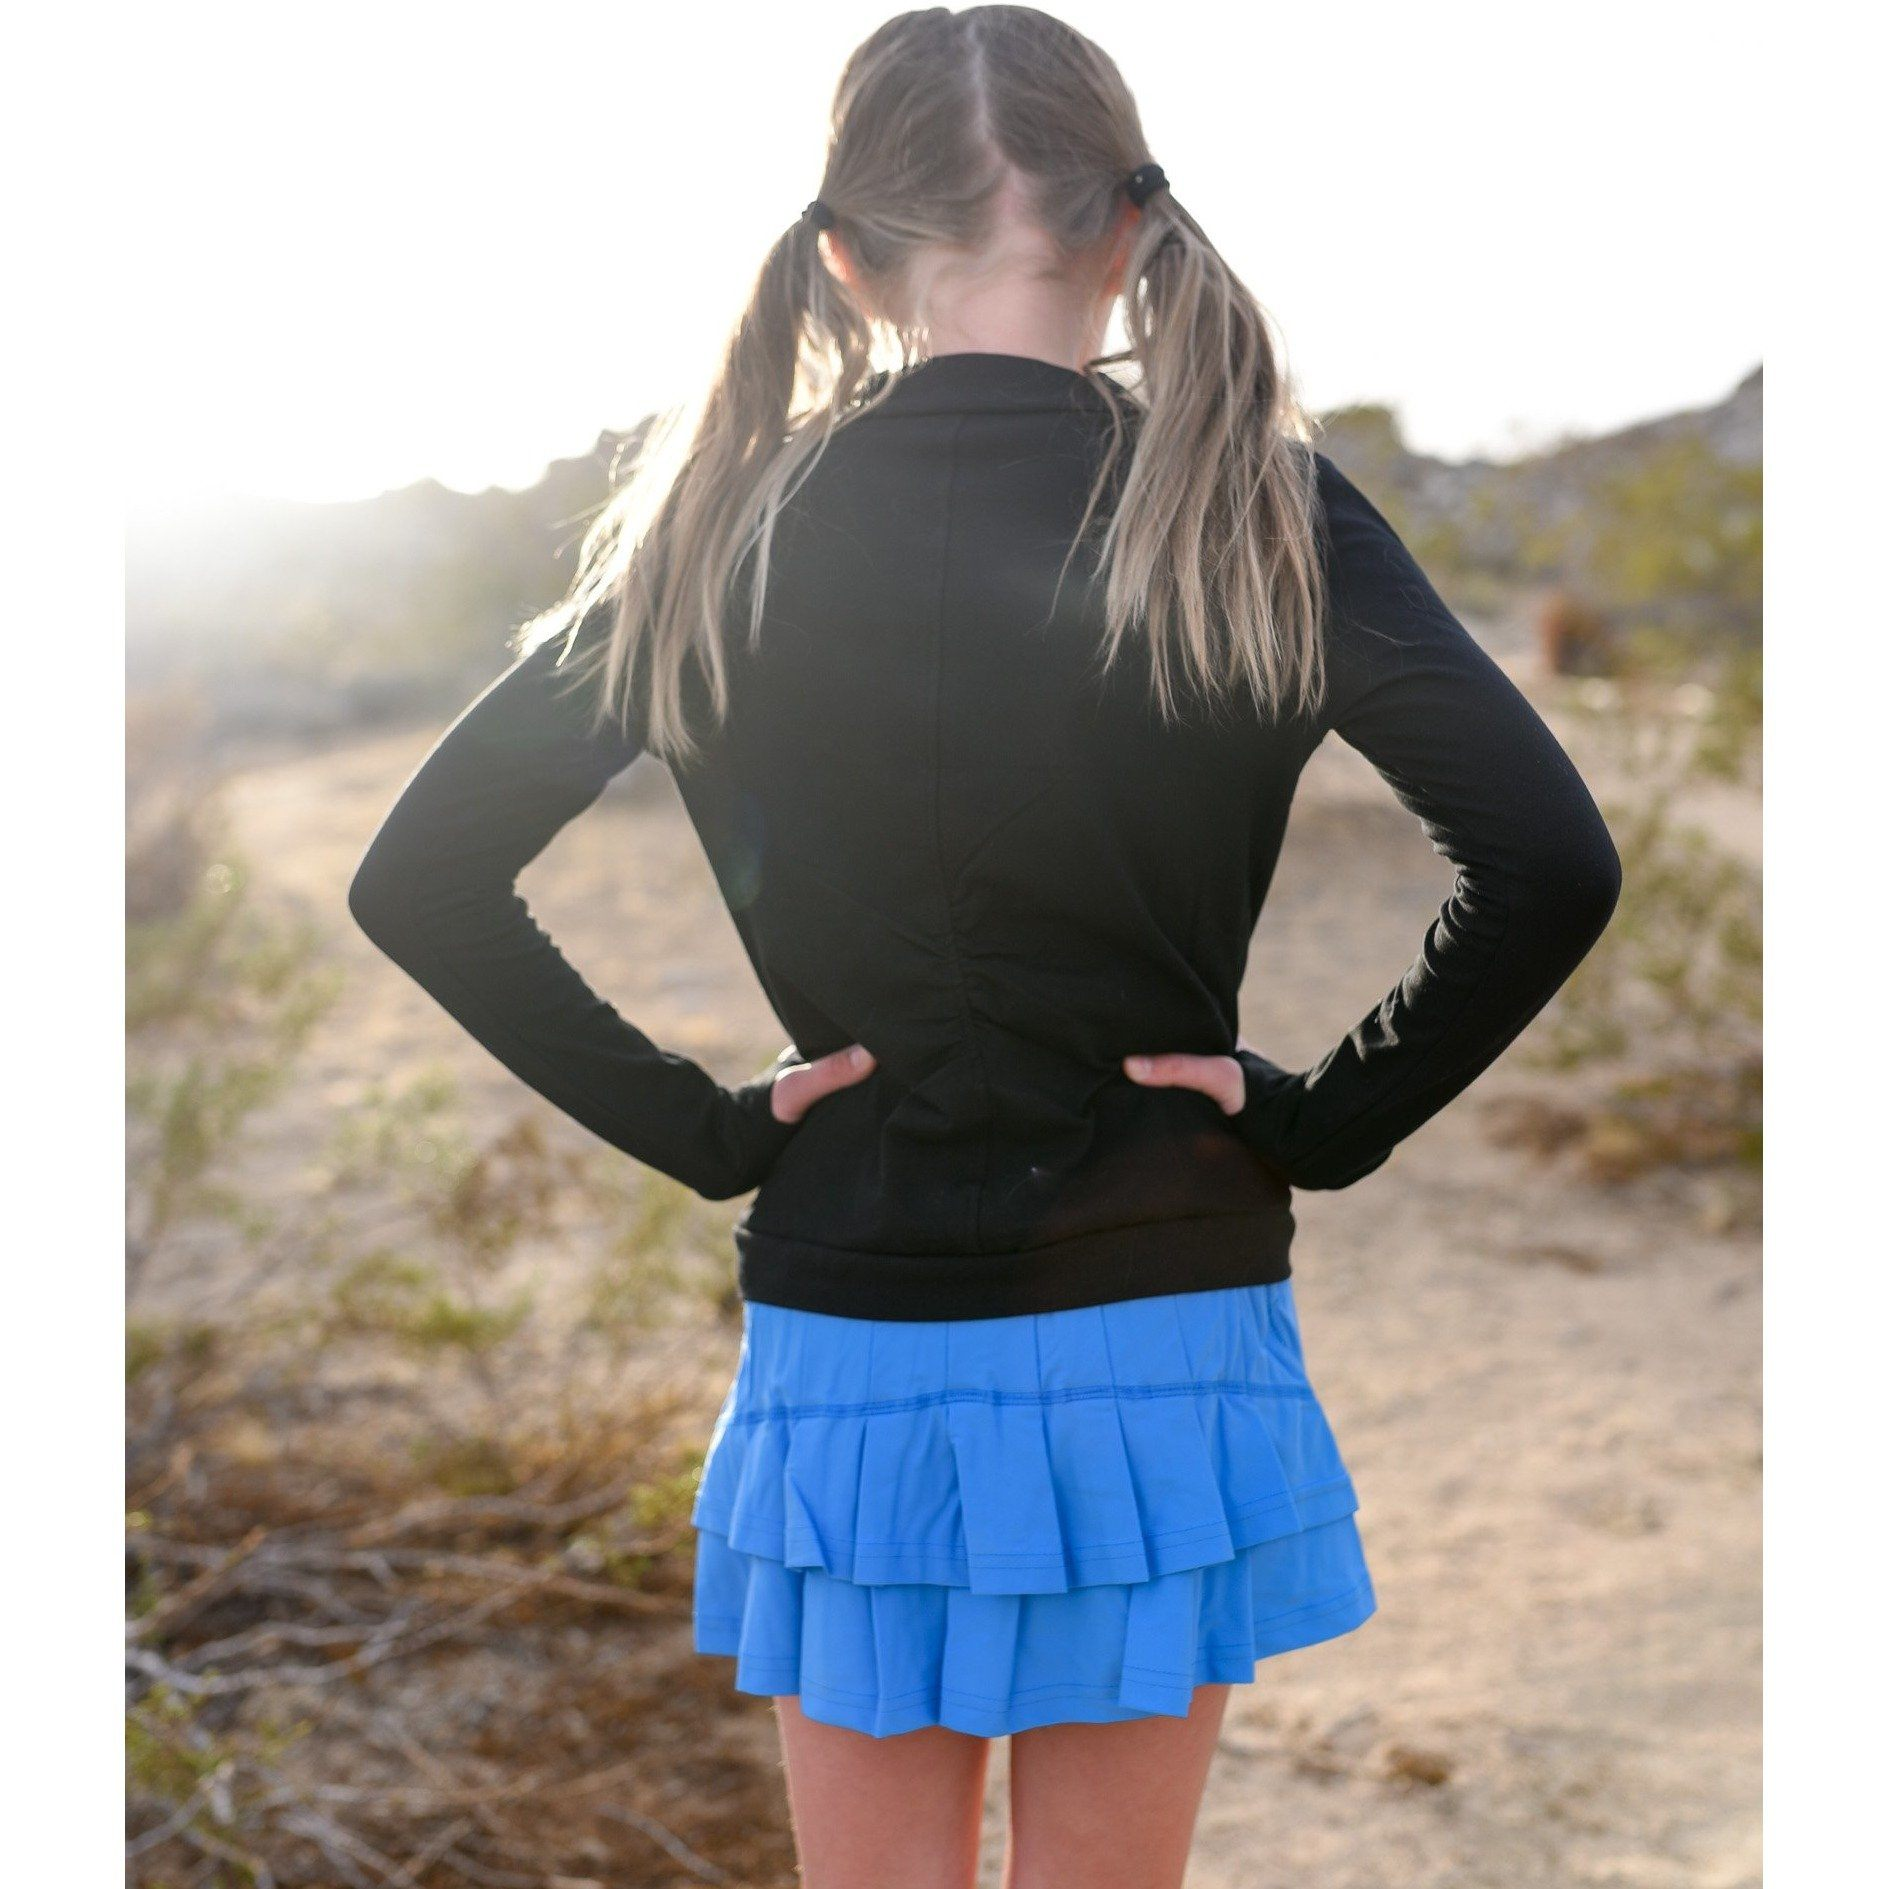 Girls Cocoon Skirt - Sky Blue - Adorable Essentials, LLC